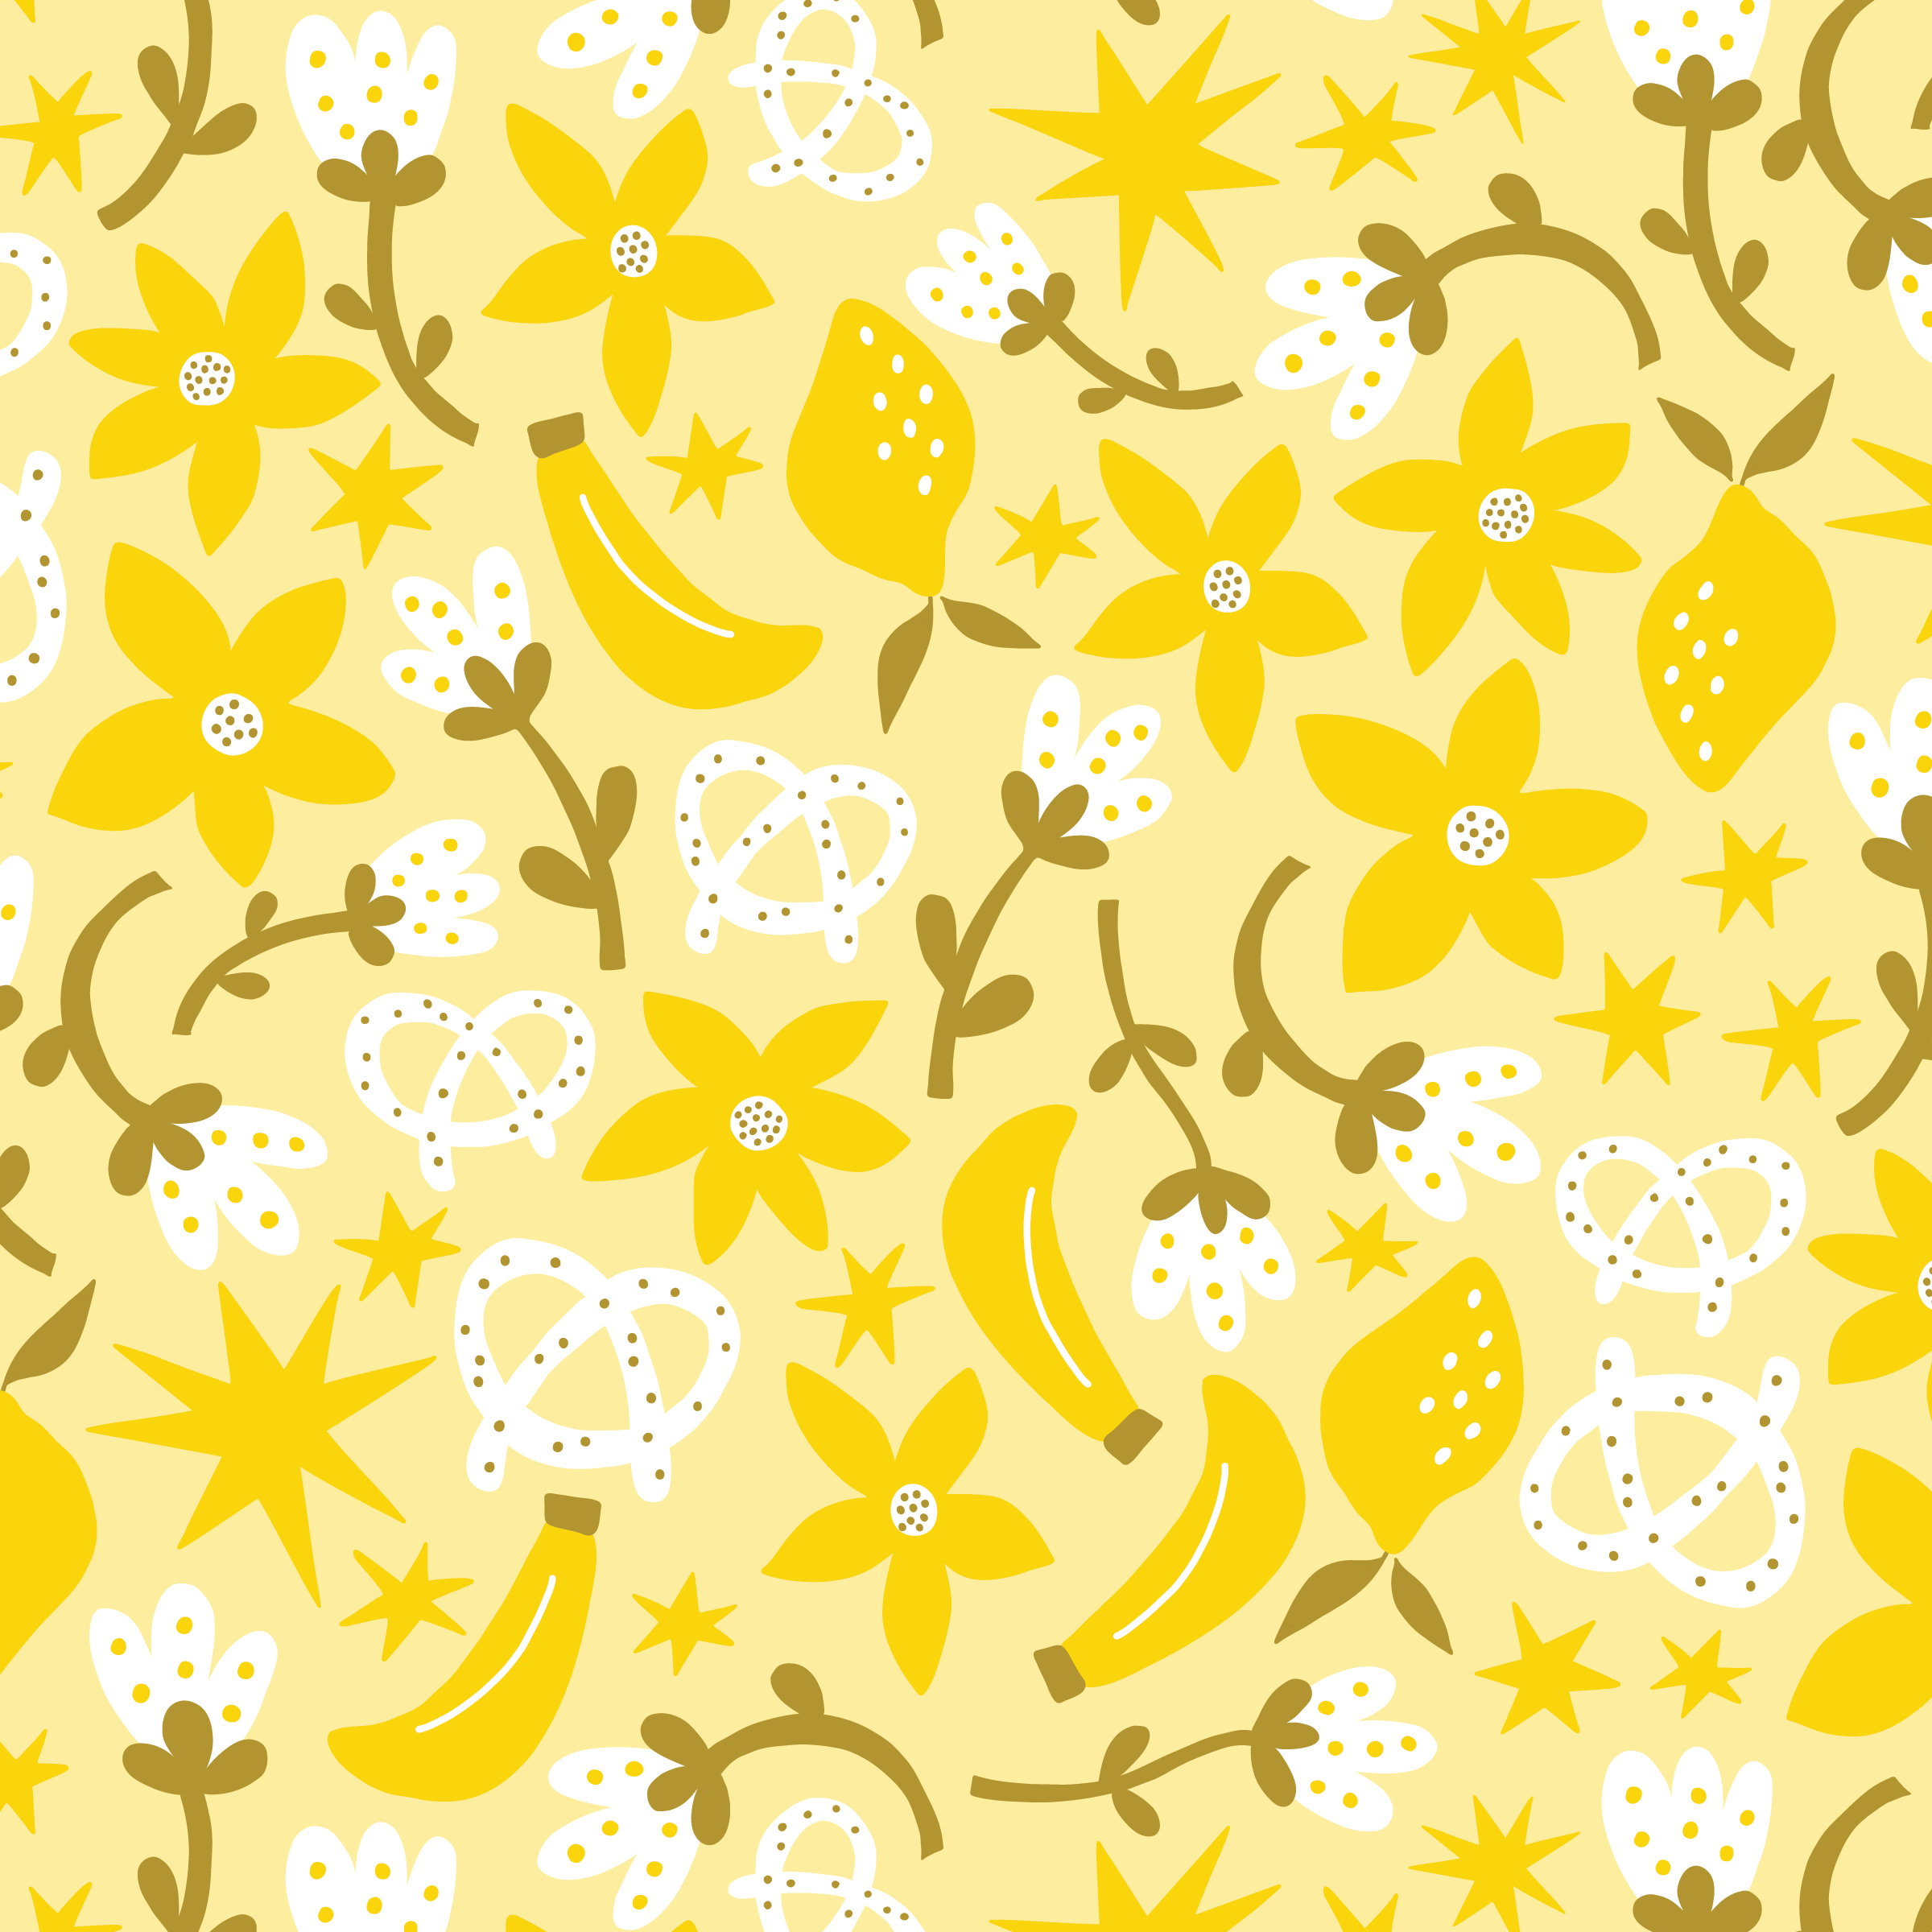 Lemon Pretzel Banana pattern by Jen Duran of Pace Creative Design Studio | Designed for the series Color Diaries: Yellow